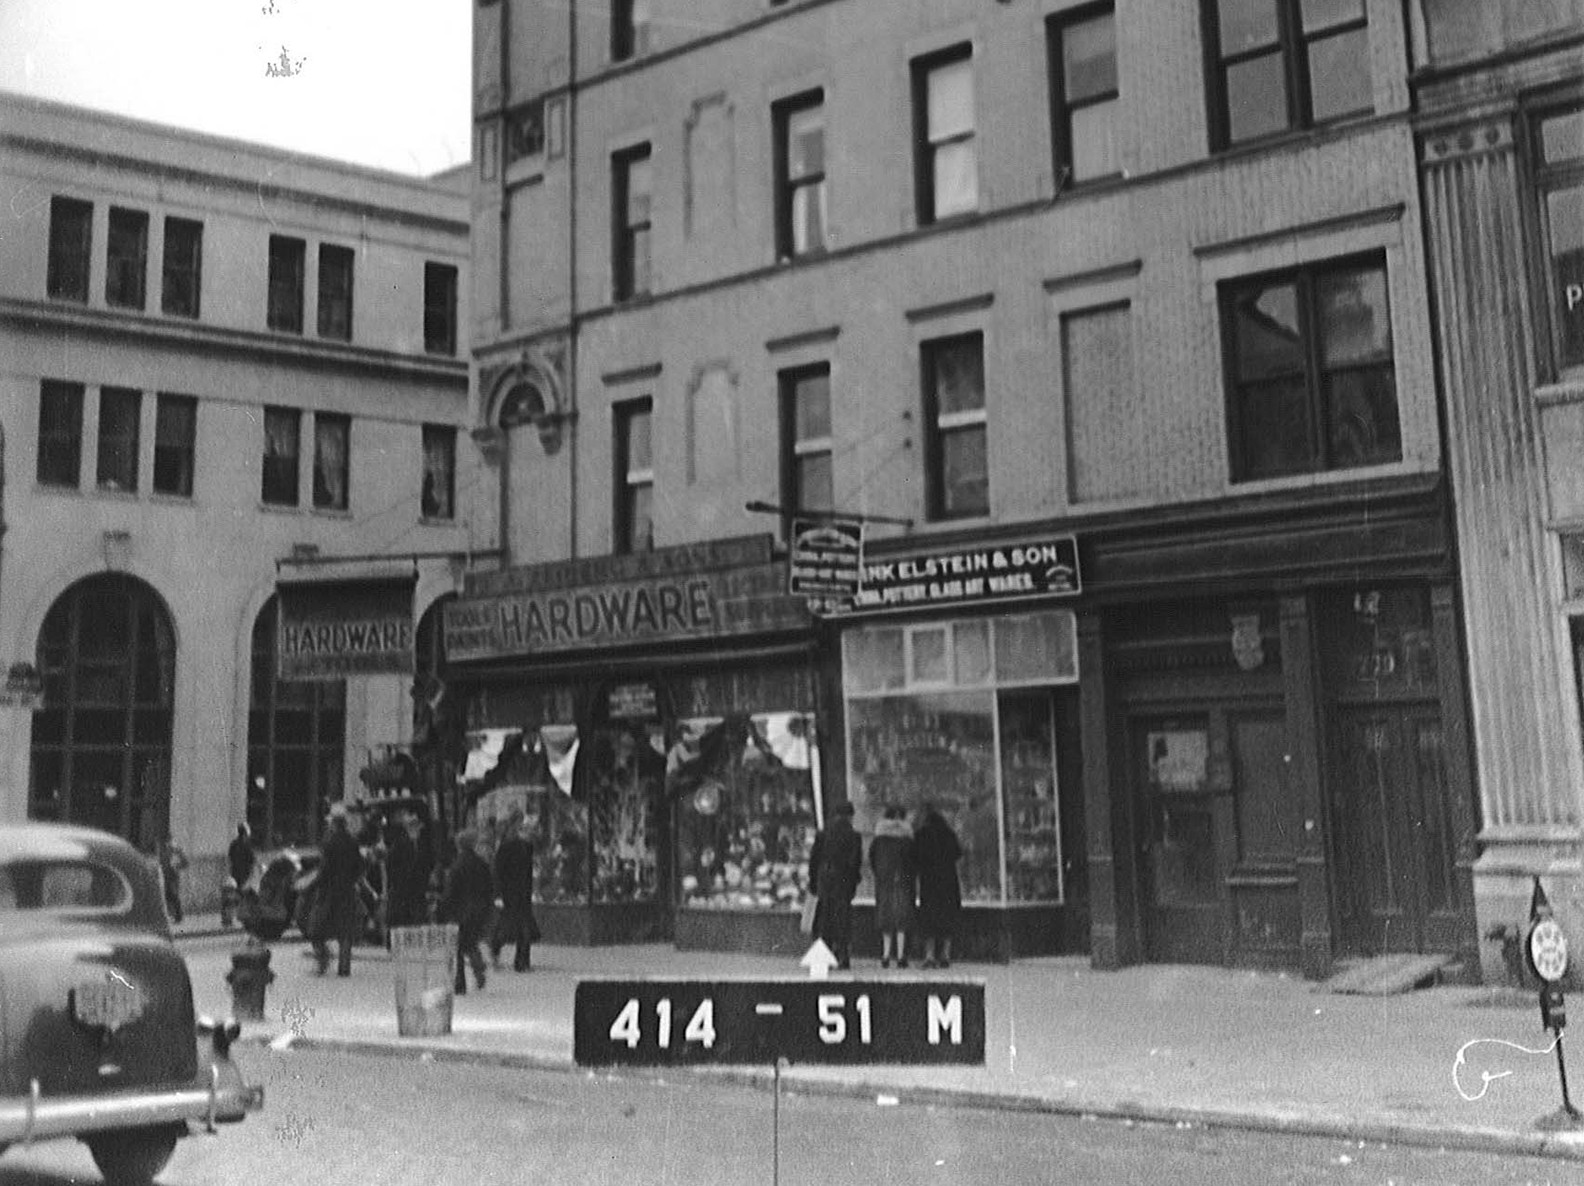 Street view of a hardware storefront at 103 Orchard in the 1940s